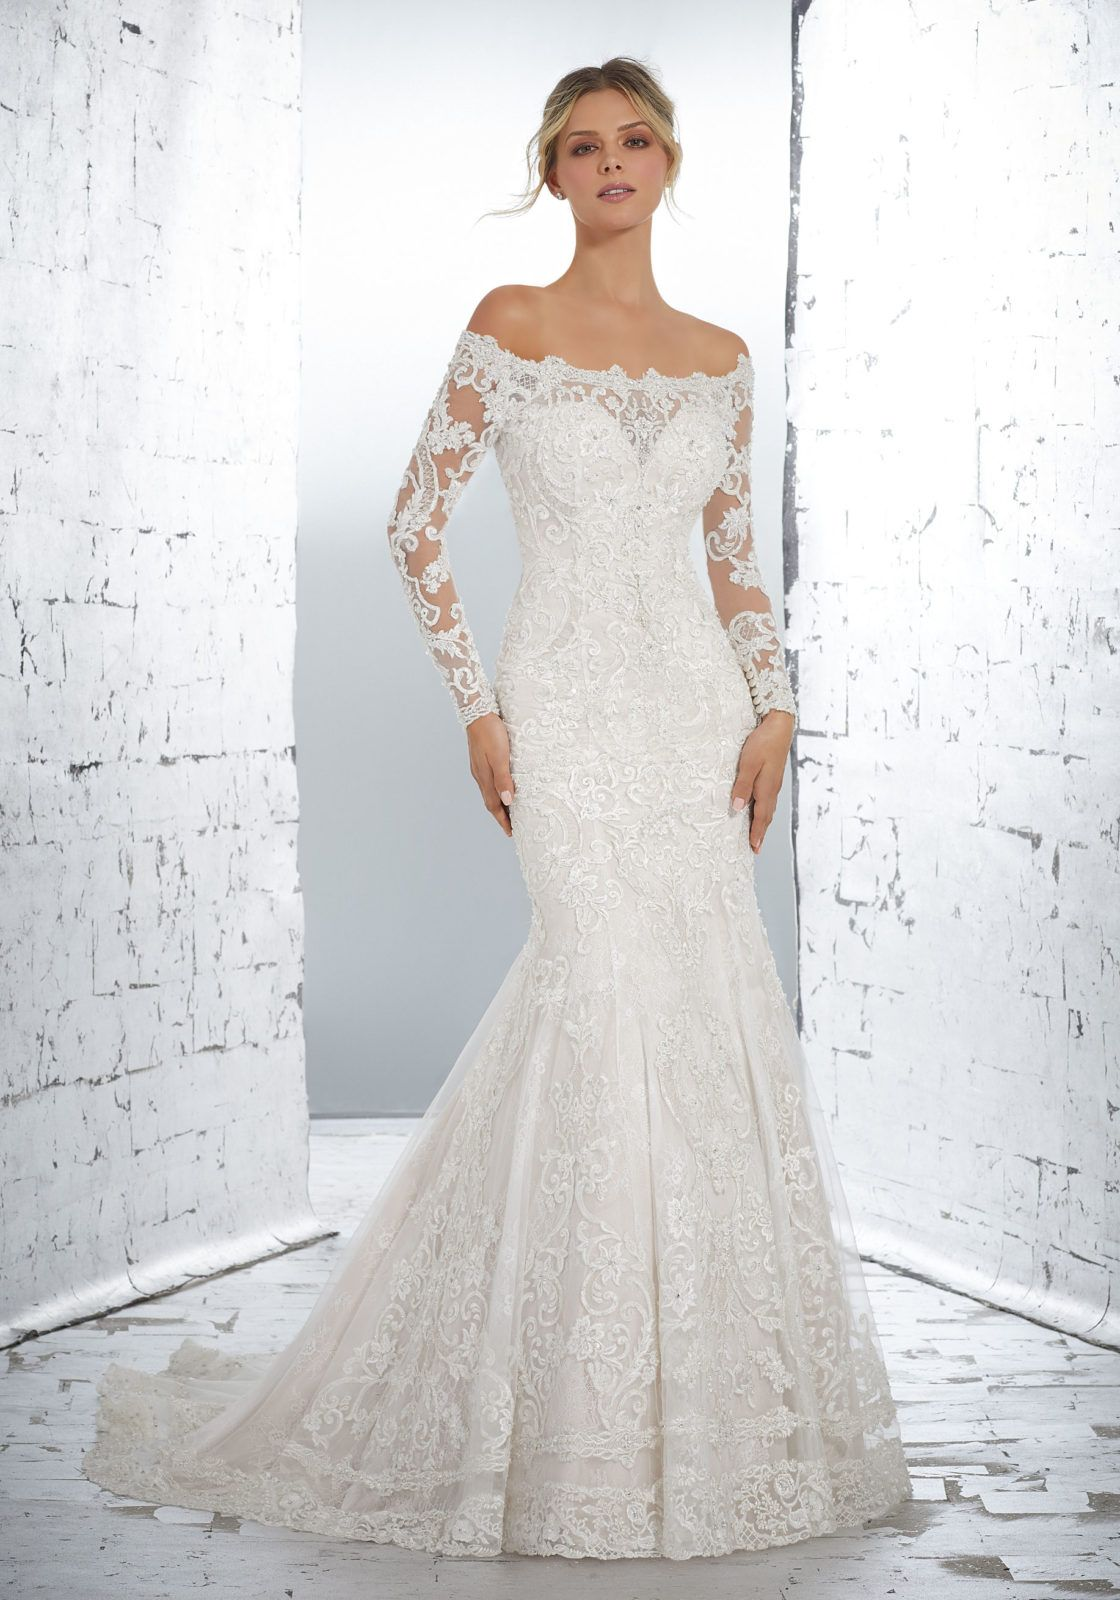 a4ac2a67d8d Morilee | Madeline Gardner, Lysandra Style 1717 | Classic Long Sleeve  Bridal Gown Featuring Crystal Beaded, Medallion Embroidered Appliqués on  Net Over ...